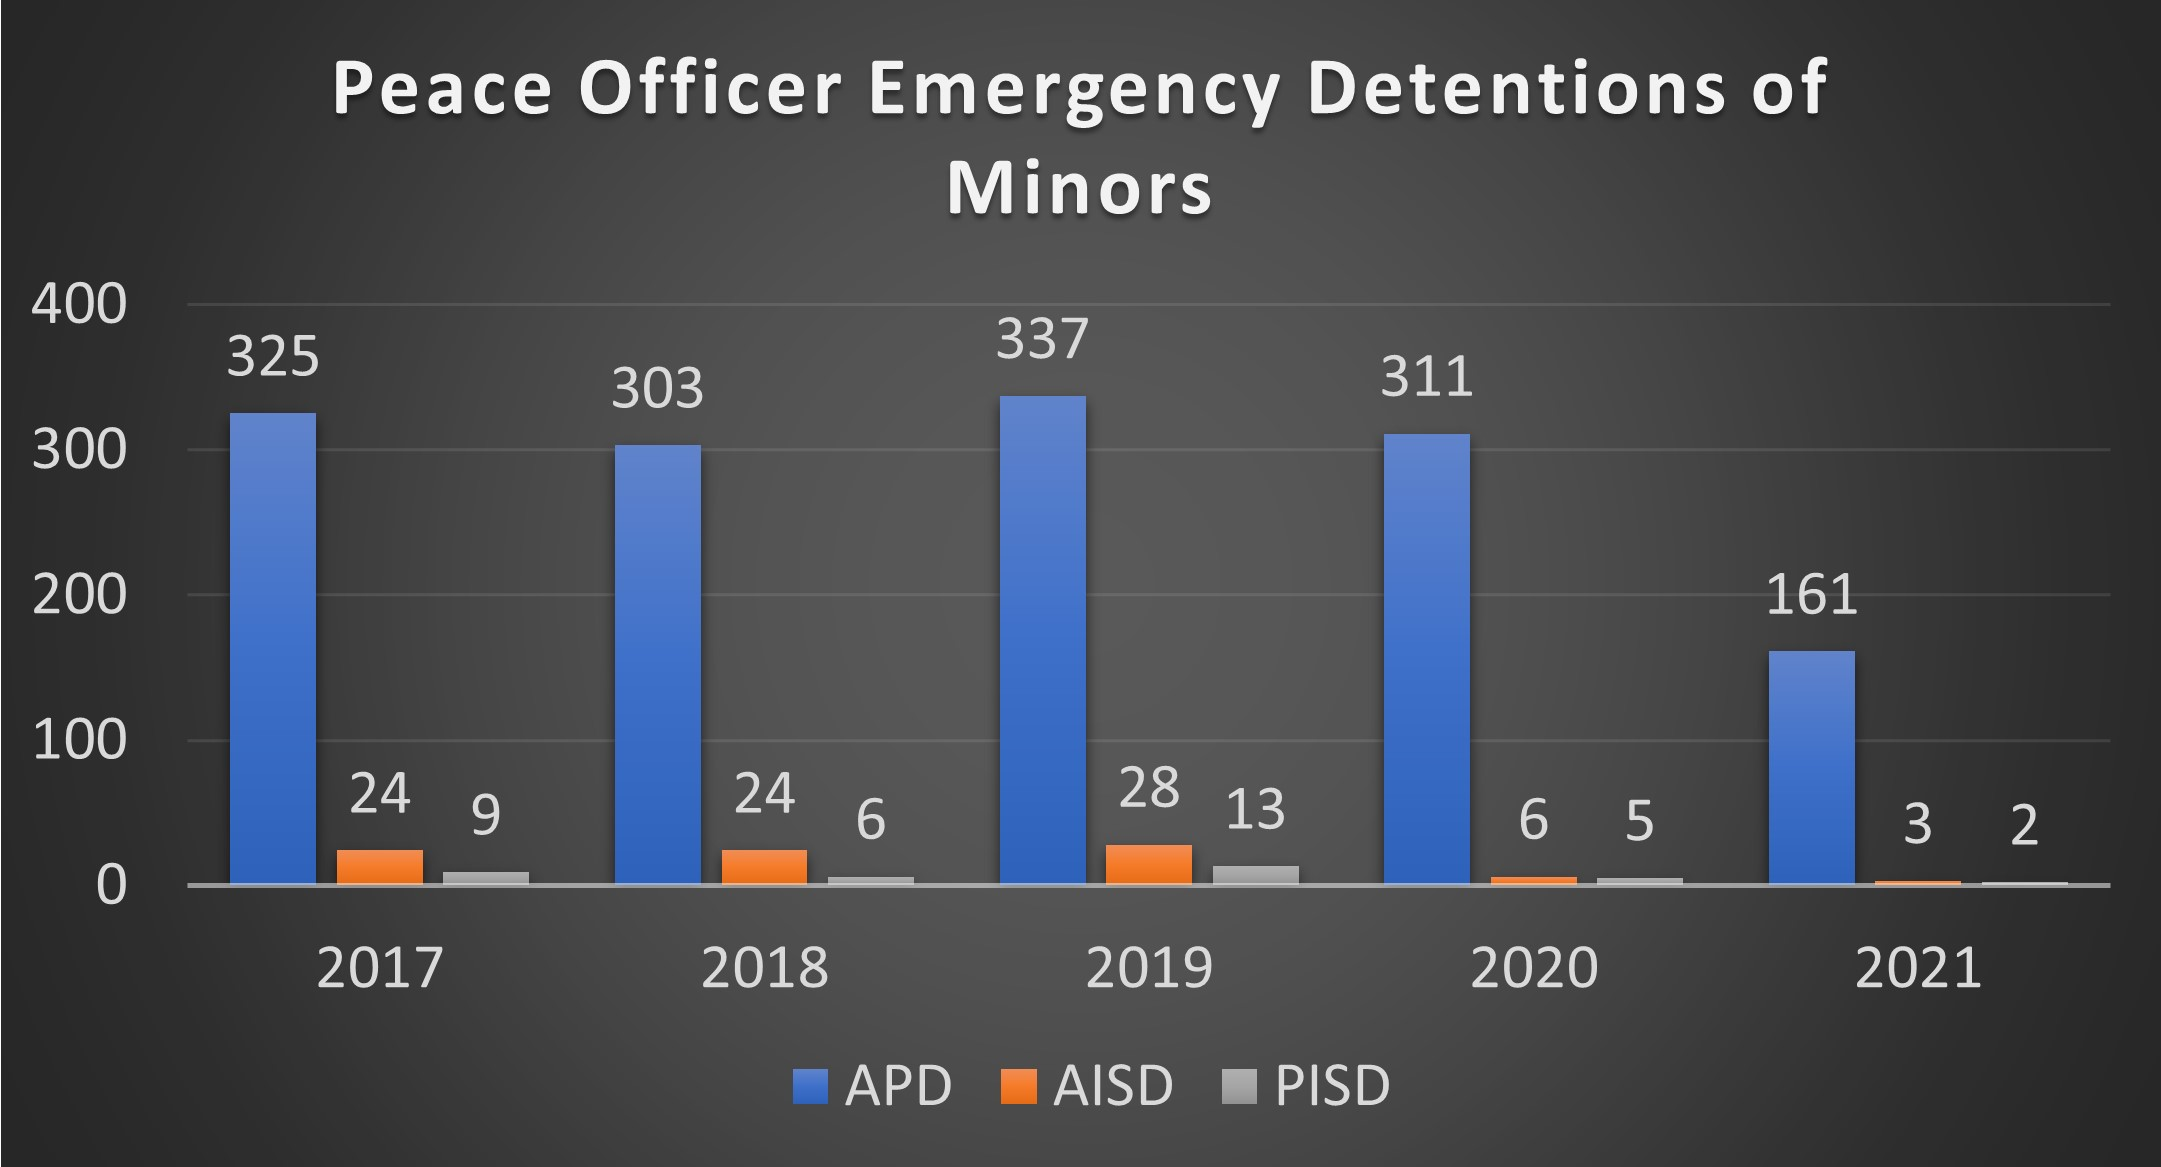 Graph showing a majority of POEDs of minors come from the Austin Police Department